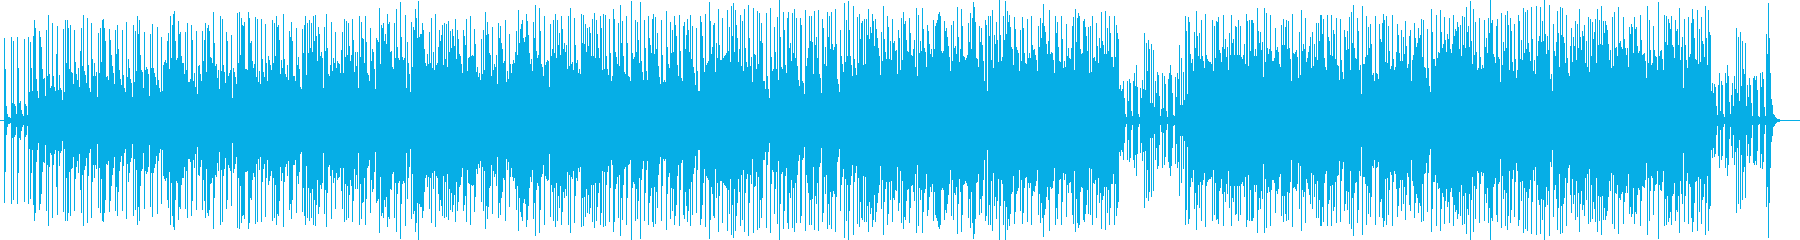 Pops that make you feel the beginning of the day's reproduced waveform